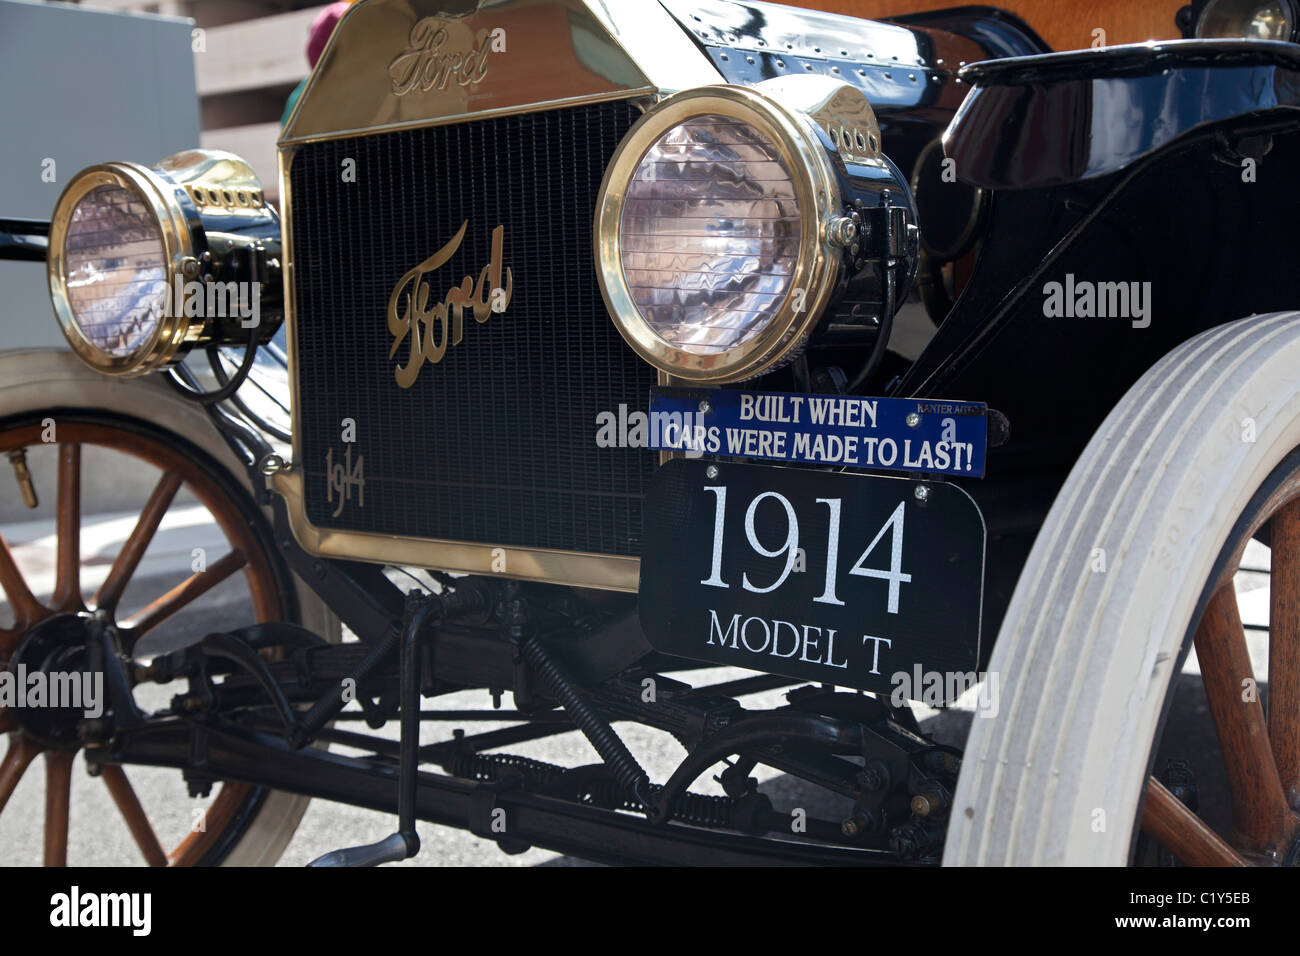 Detroit, Michigan - A Ford 1914 Model T automobile. - Stock Image